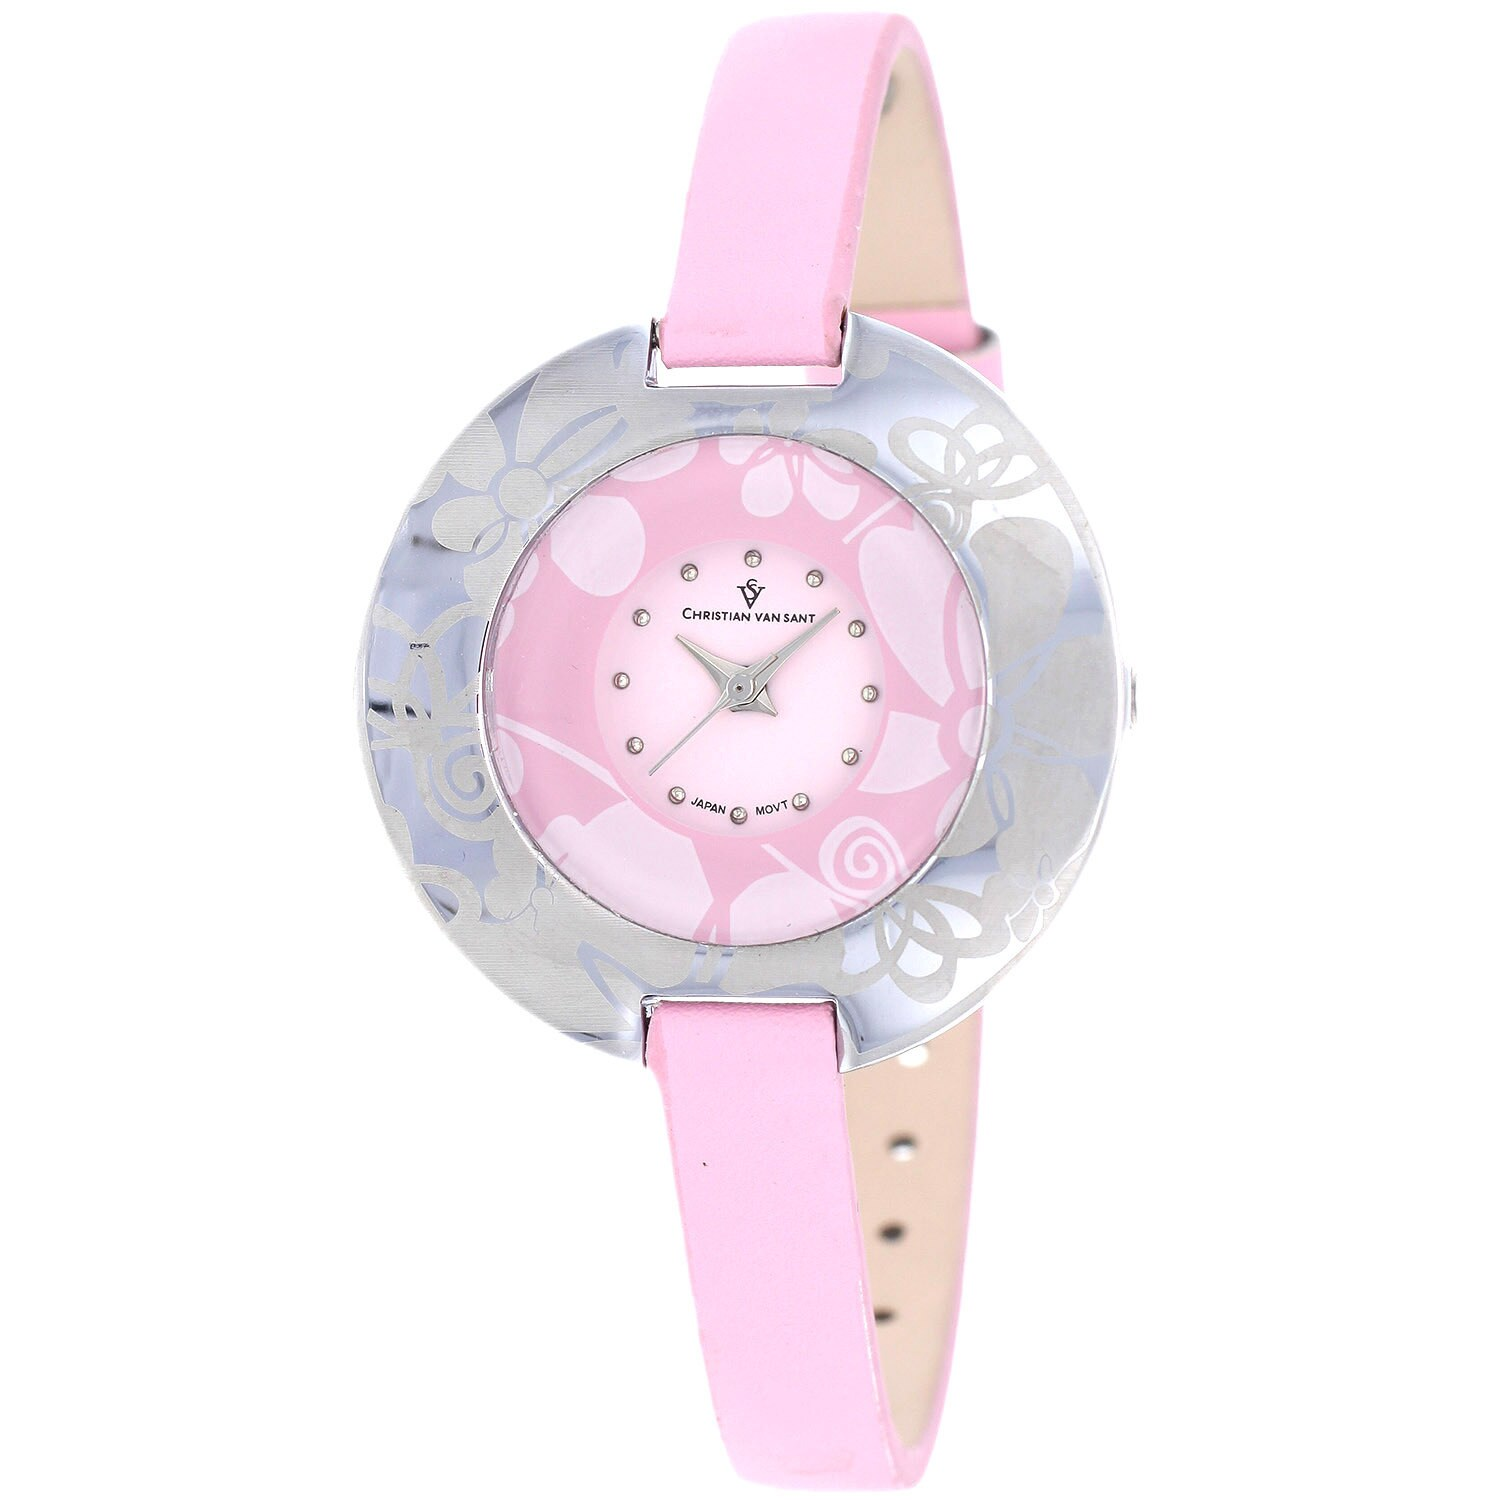 Christian Van Sant Women's Candy Watch, Pink, Size One Si...